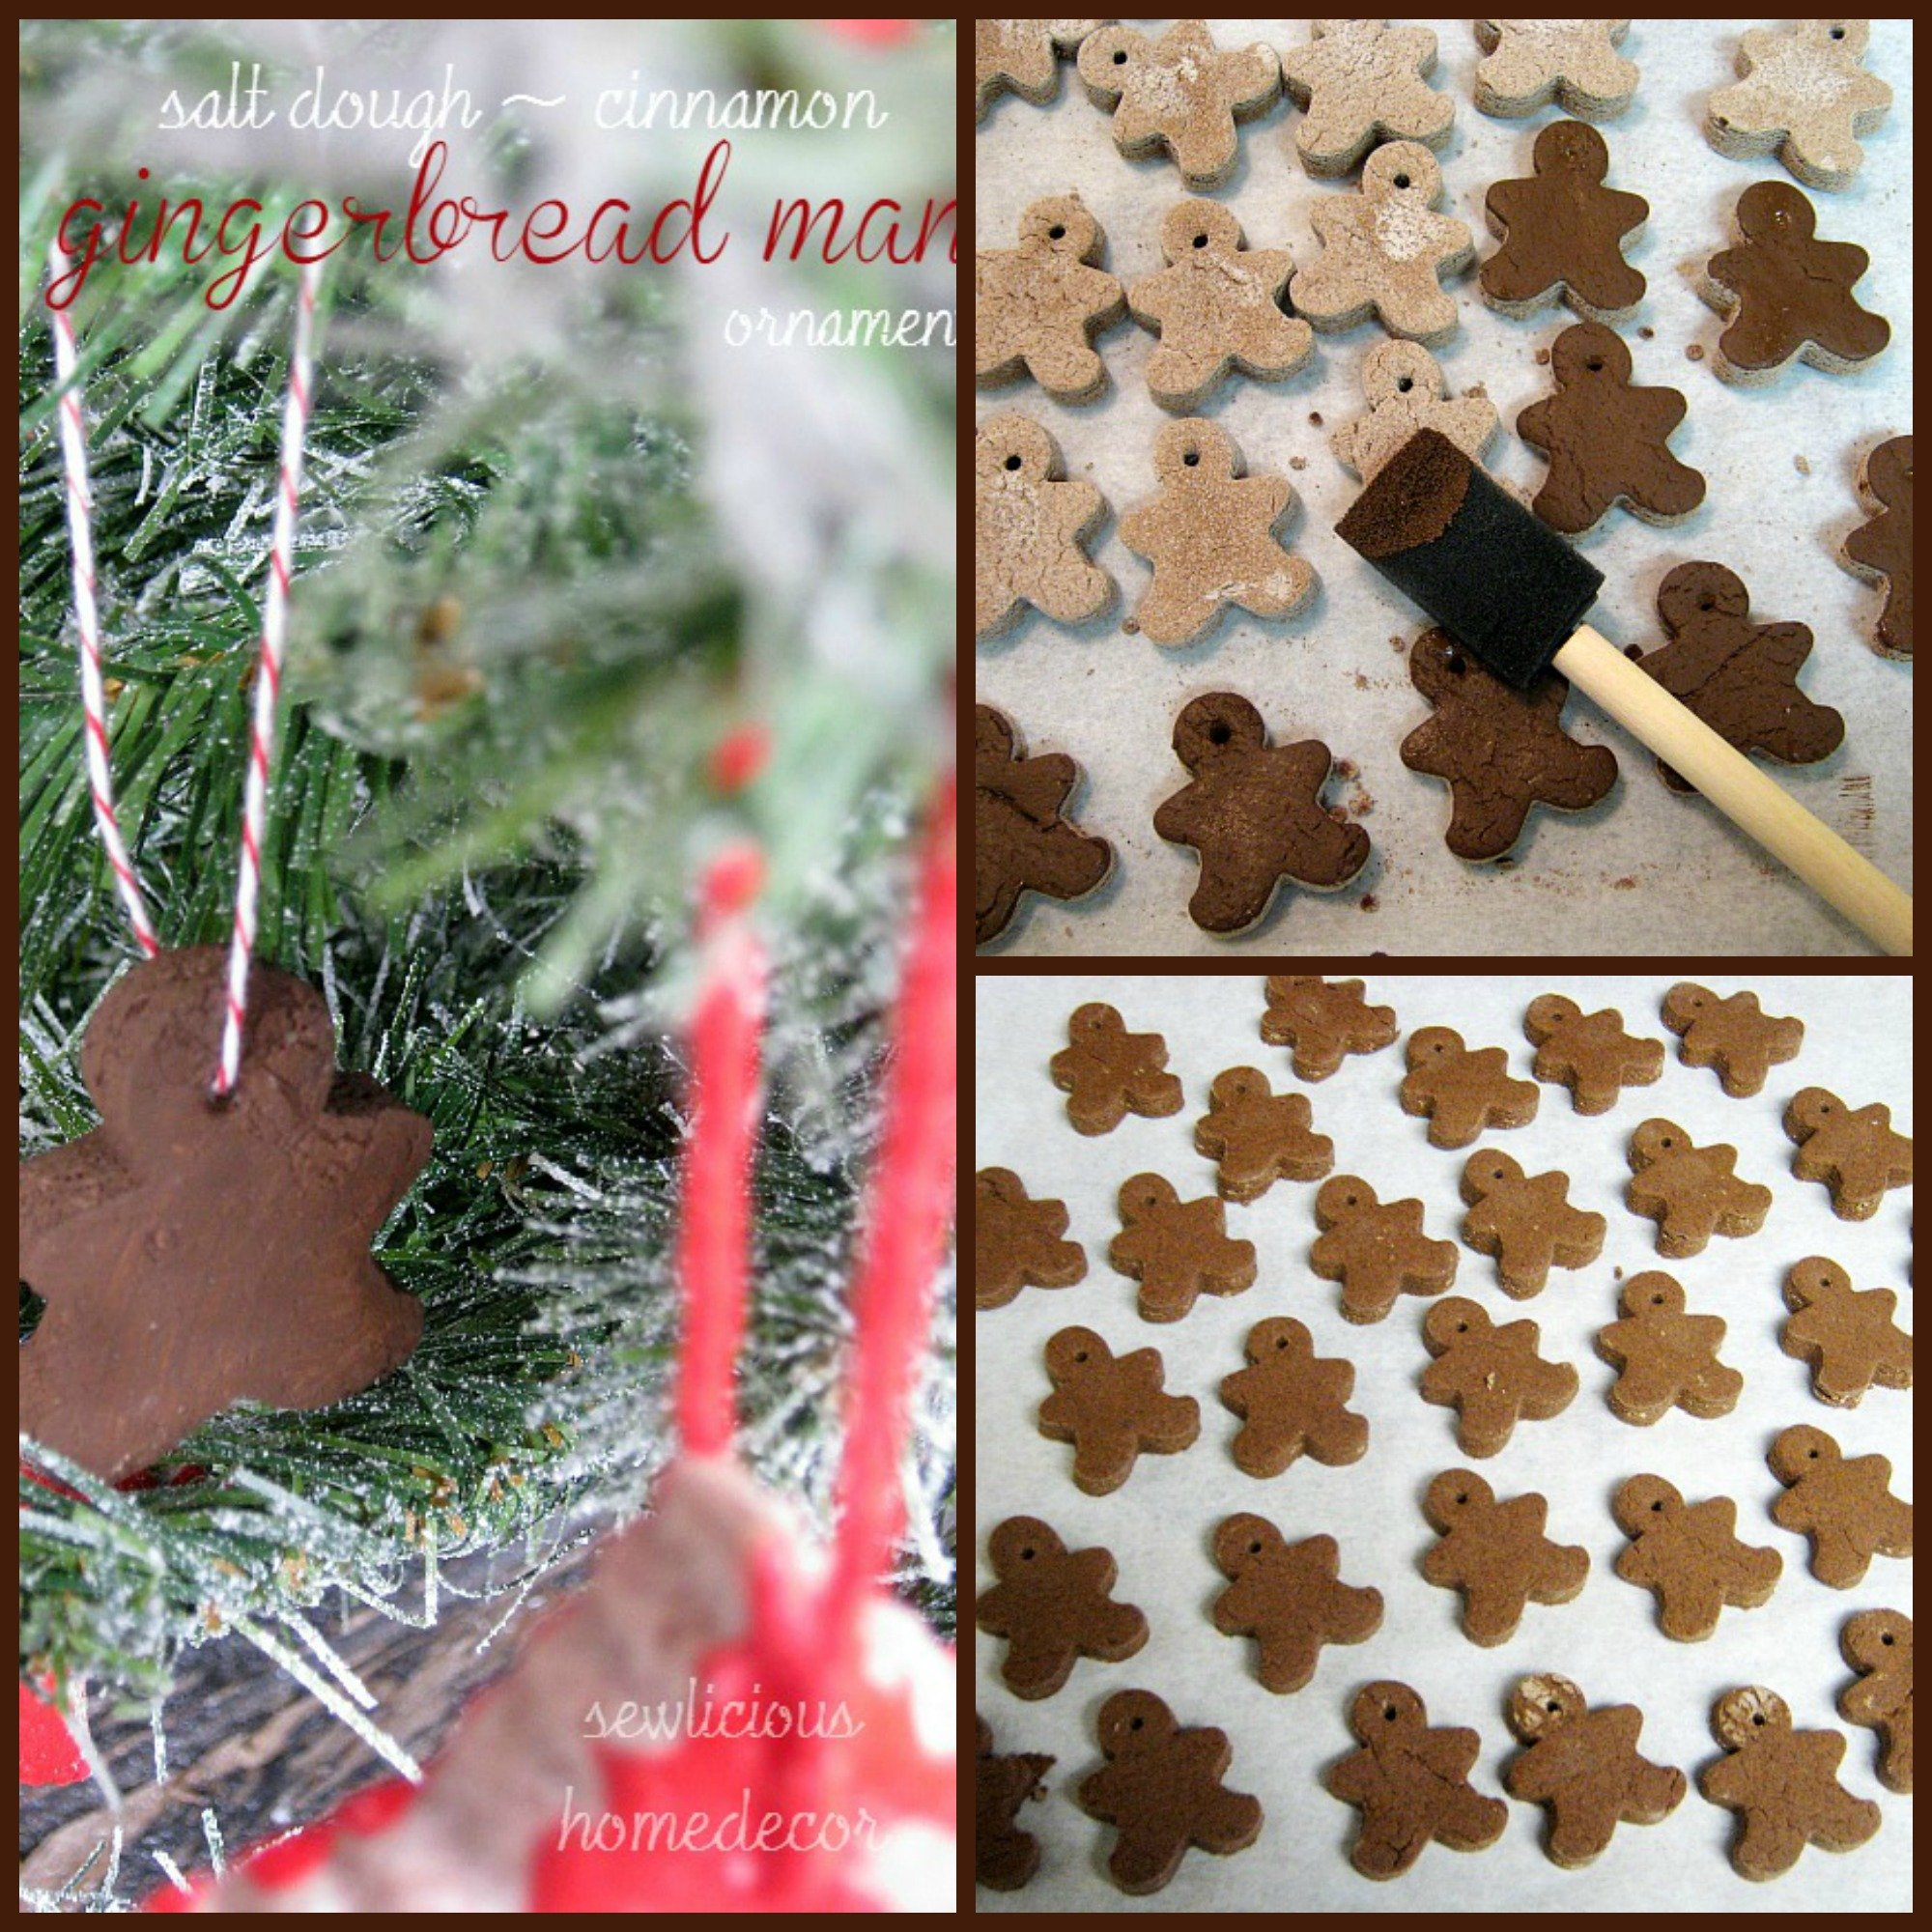 Cinnamon Salt Dough Gingerbread Man Ornament tutorial